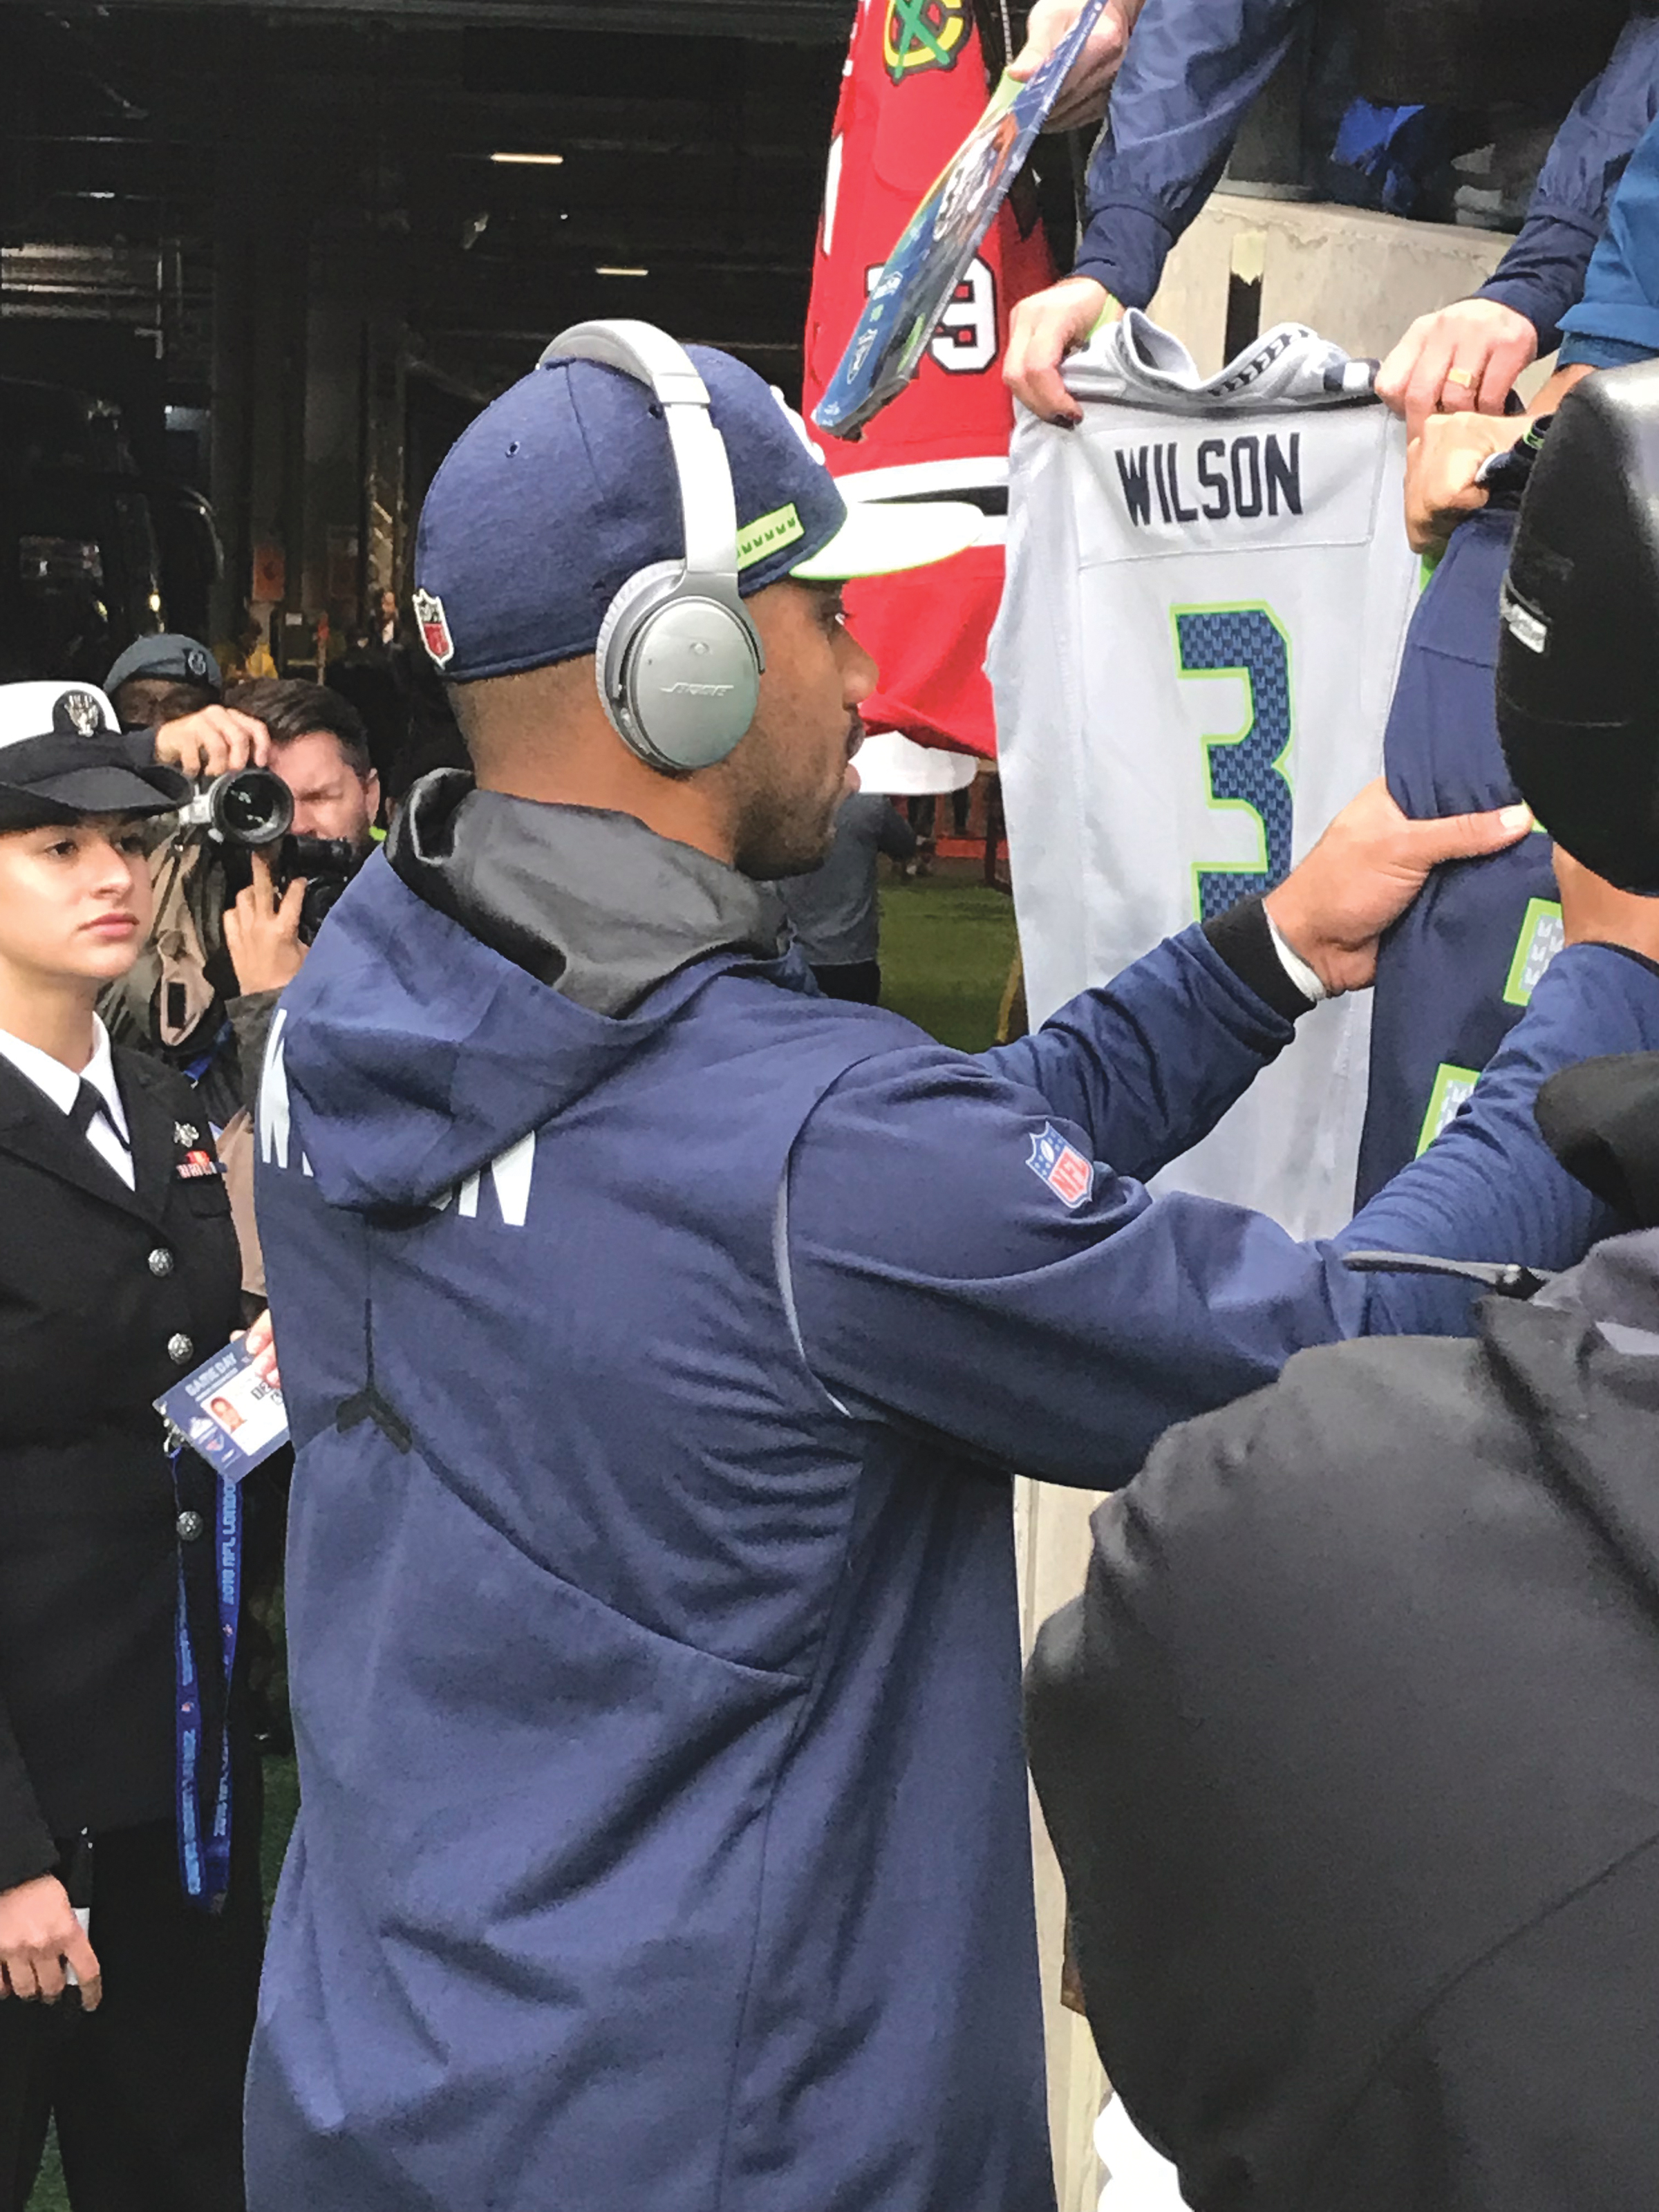 Seahawks Quarterback Russell Wilson signing jersey's prior to kickoff as the Seattle Seahawks were in London to take on the Oakland Raiders. (whatsgoodinsports.com/LA News Observer photo)